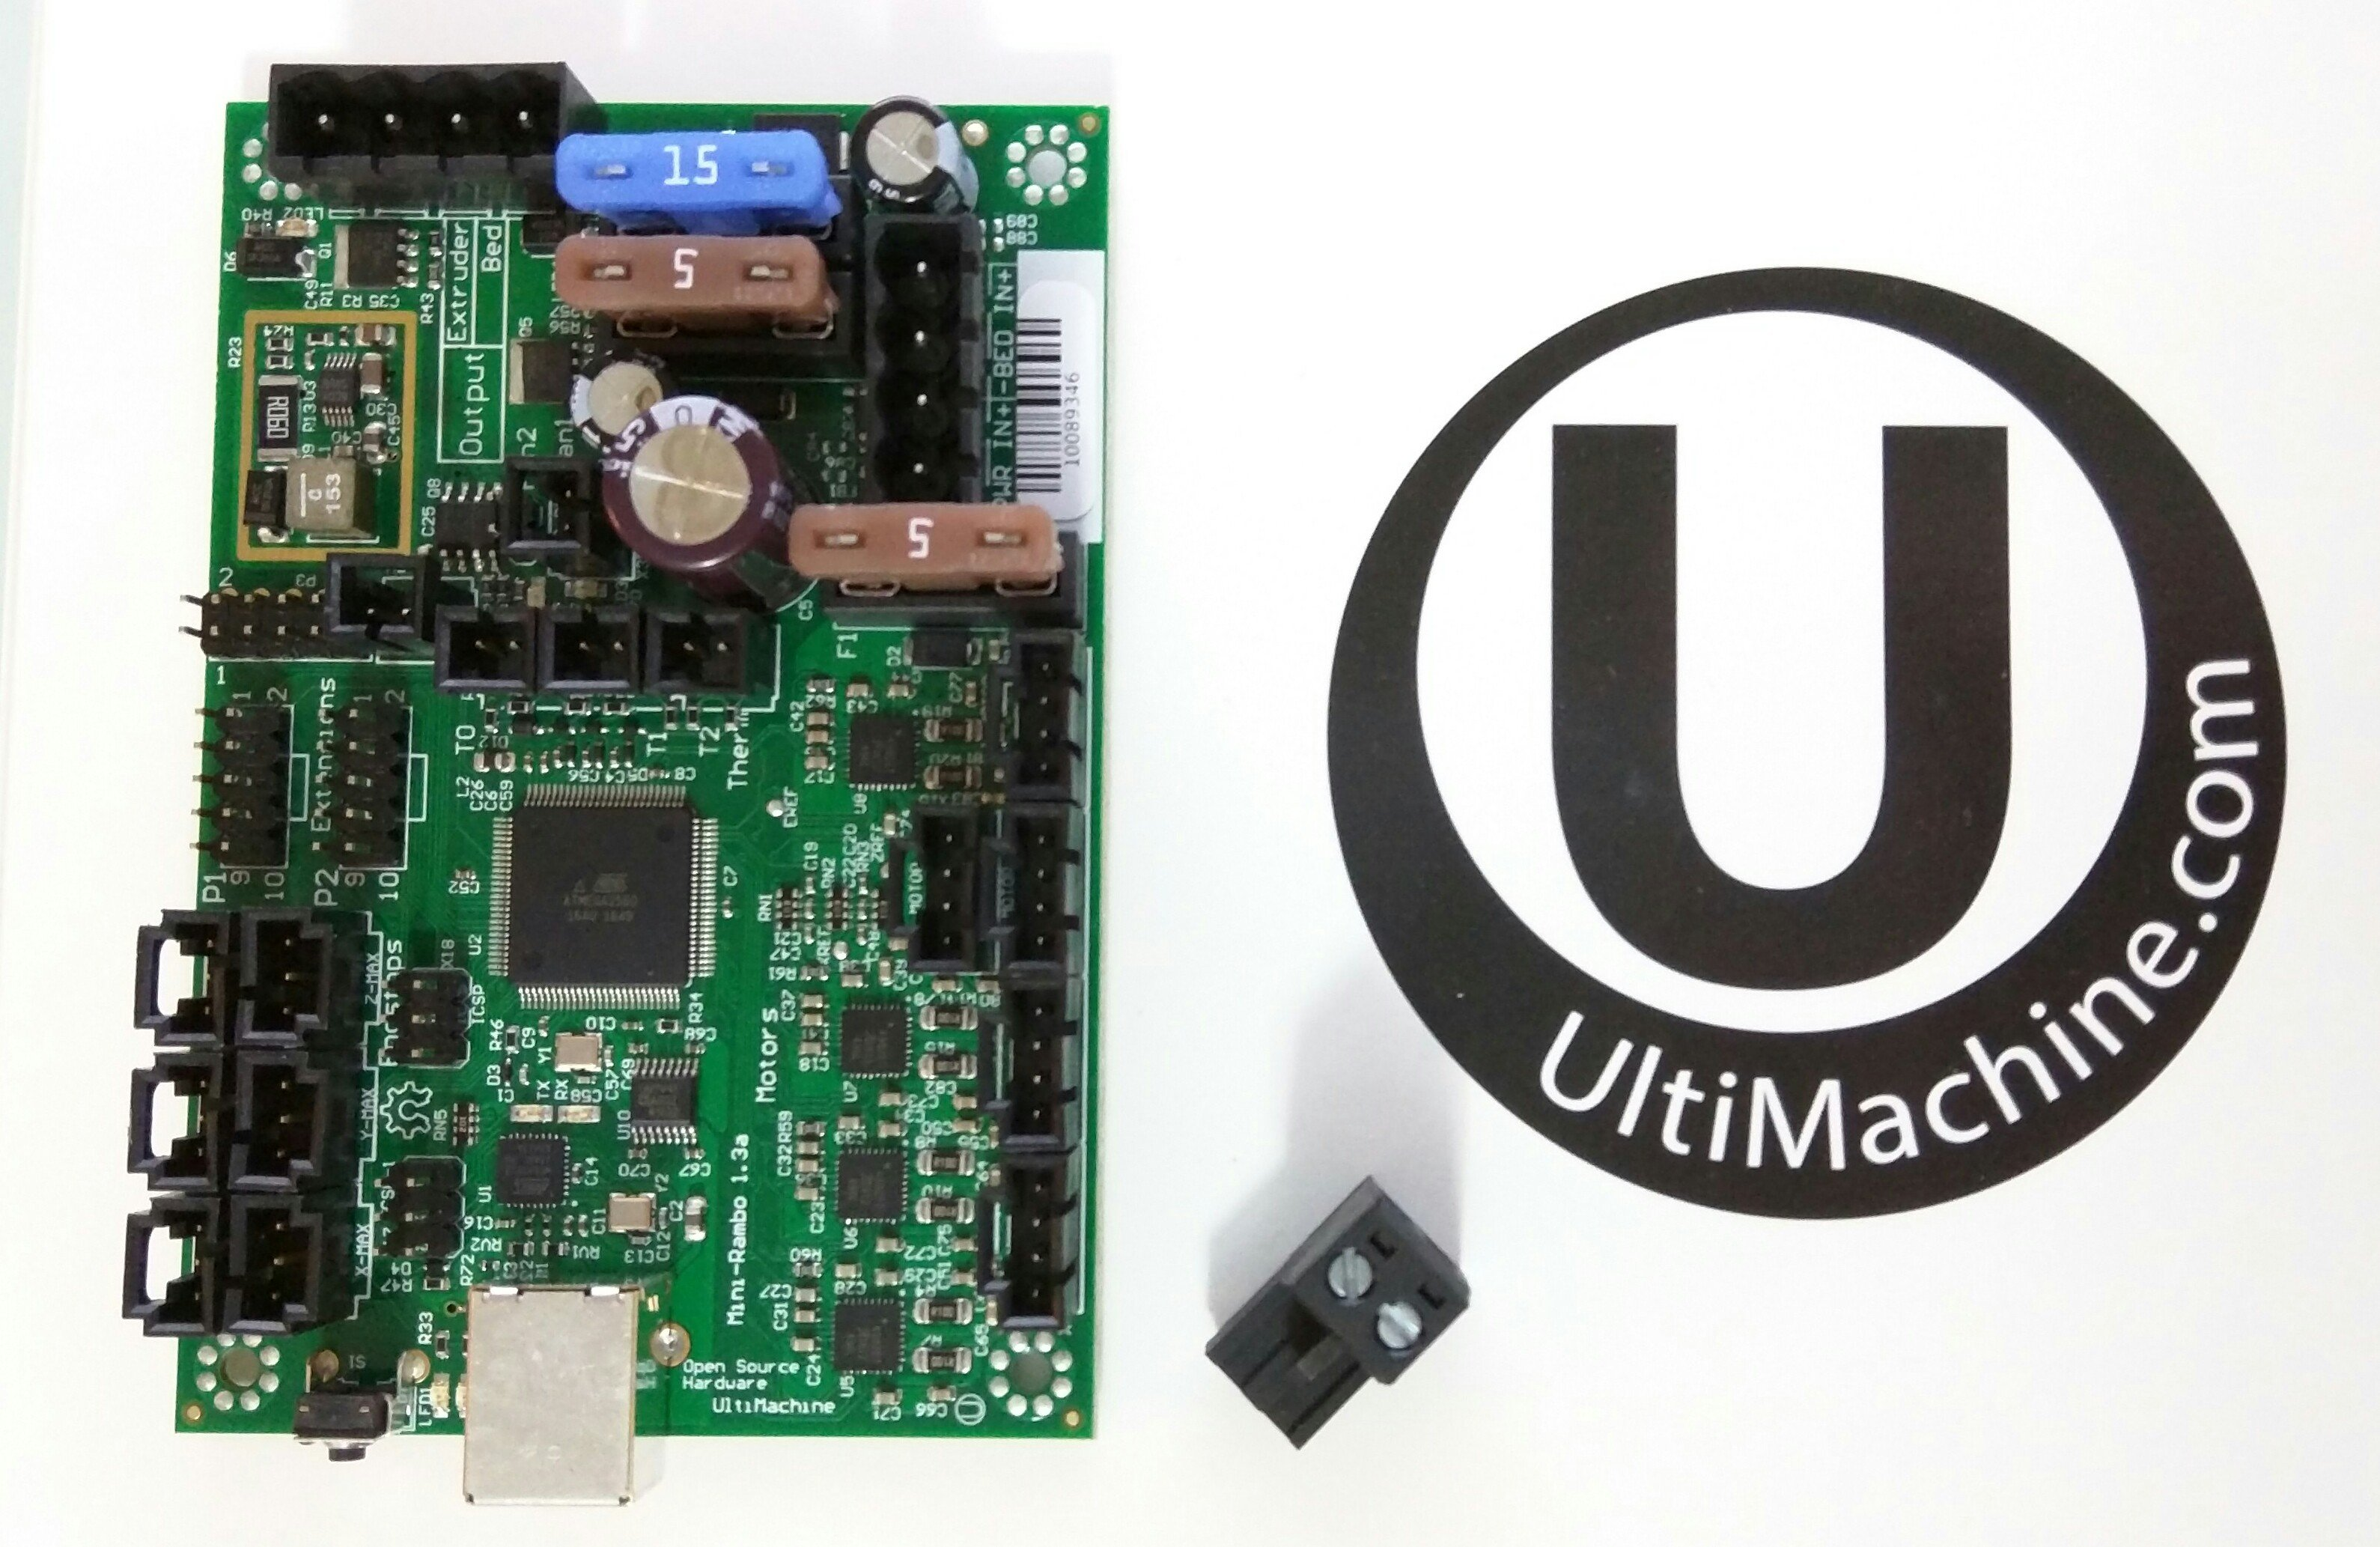 UltiMachine Control Boards | V1 Engineering